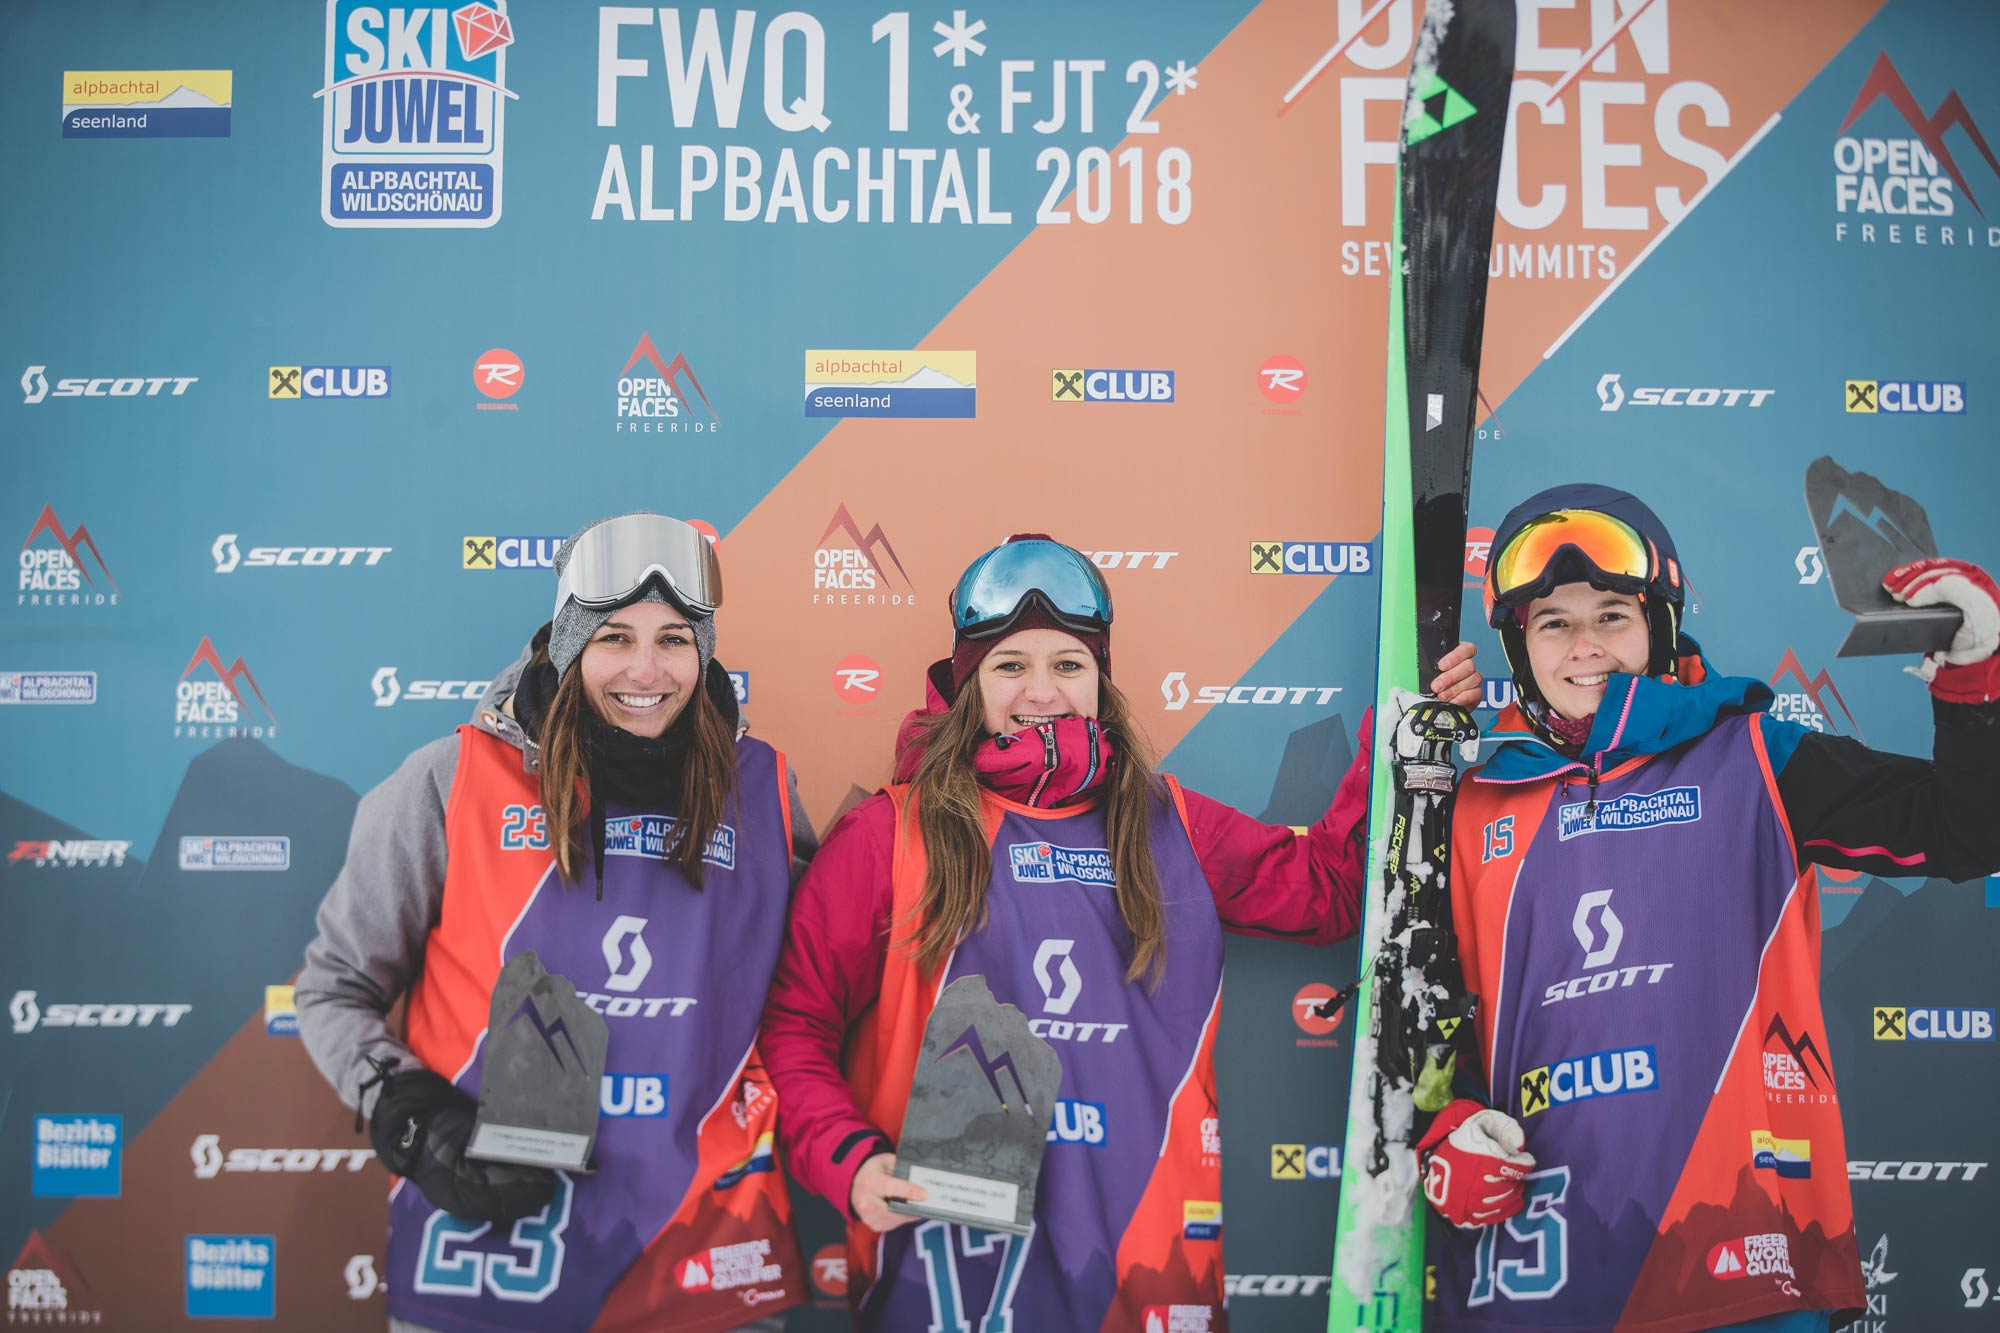 Die Top 3 Frauen beim Open Faces Freeride Contests in Alpbach (FWQ): Nina Keysberg (GER), Lisa-Maria Ulz (AUT) und Elisabeth Auer (AUT) - Foto: Open Faces / Mia Knoll